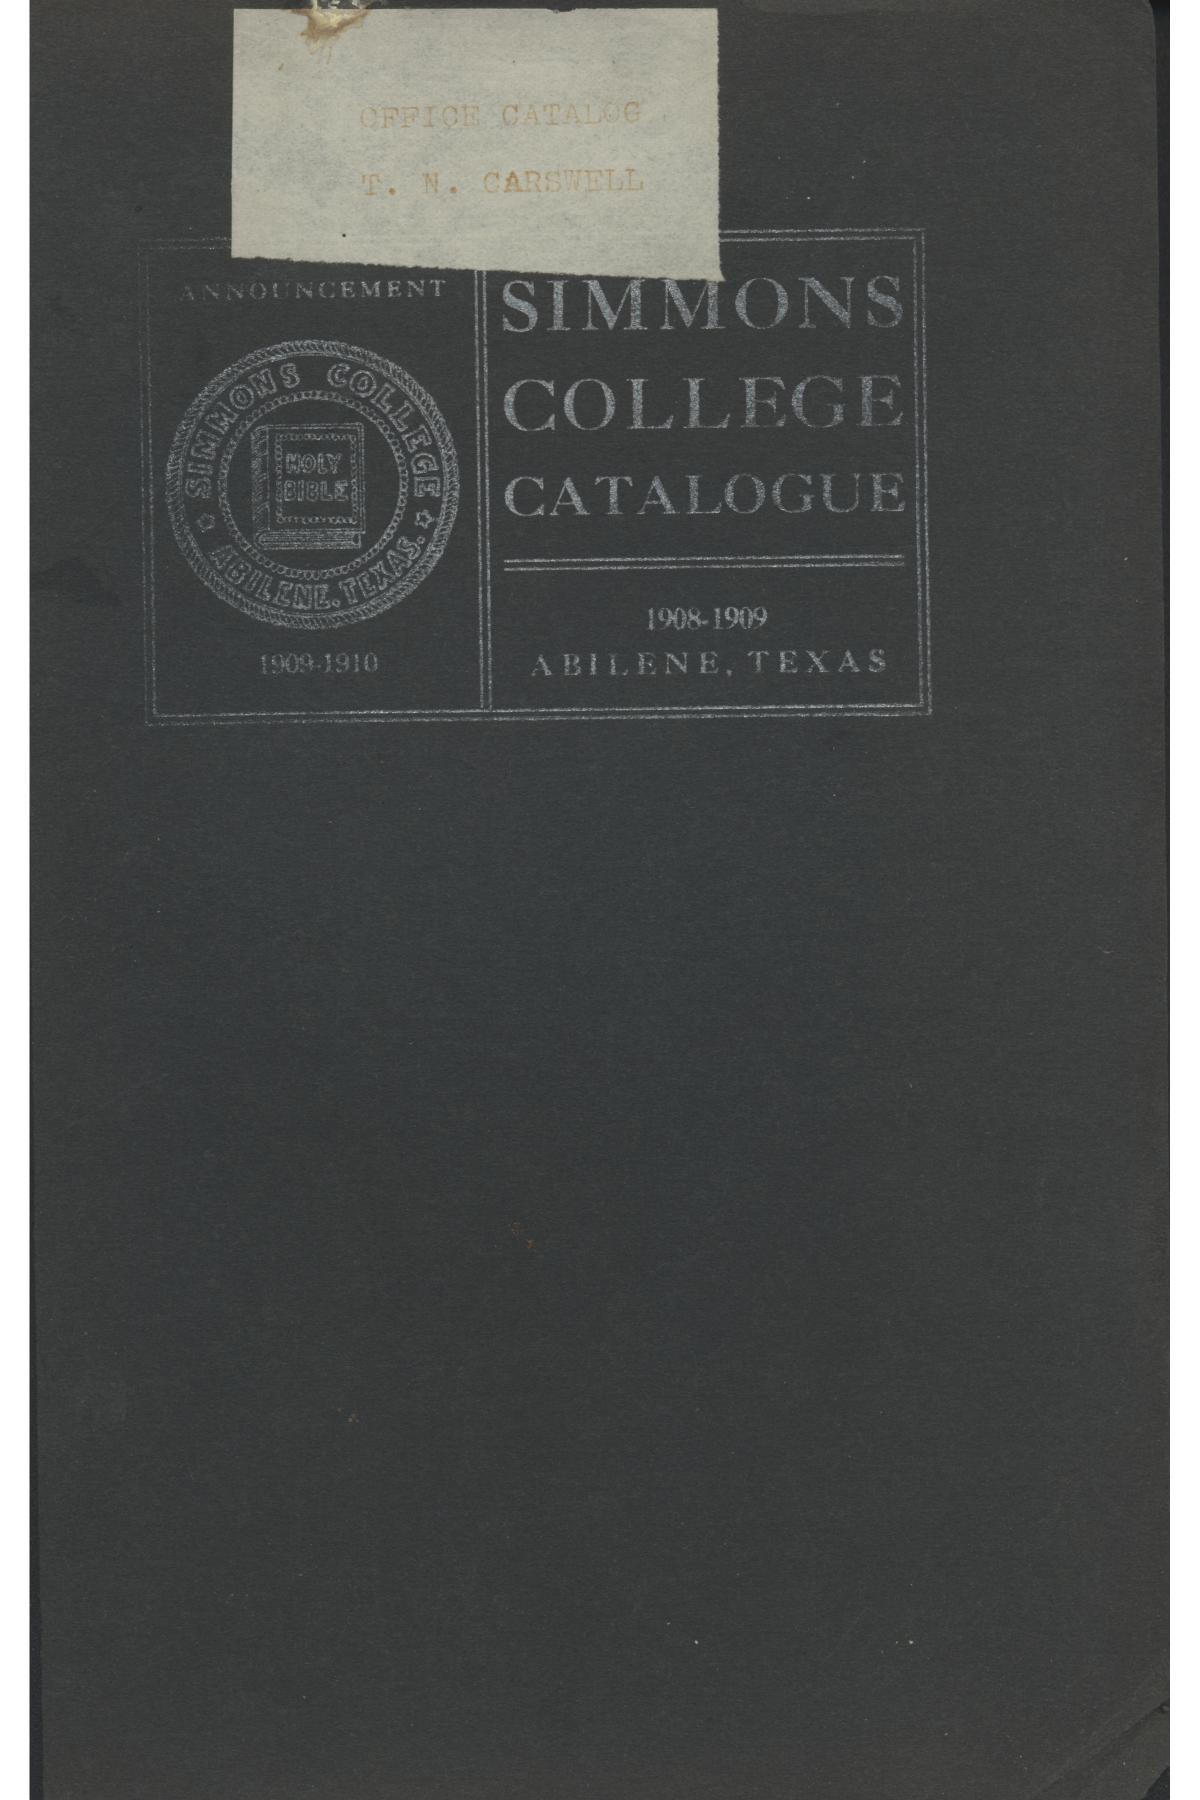 Catalogue of Simmons College, 1908-1909                                                                                                      Front Cover